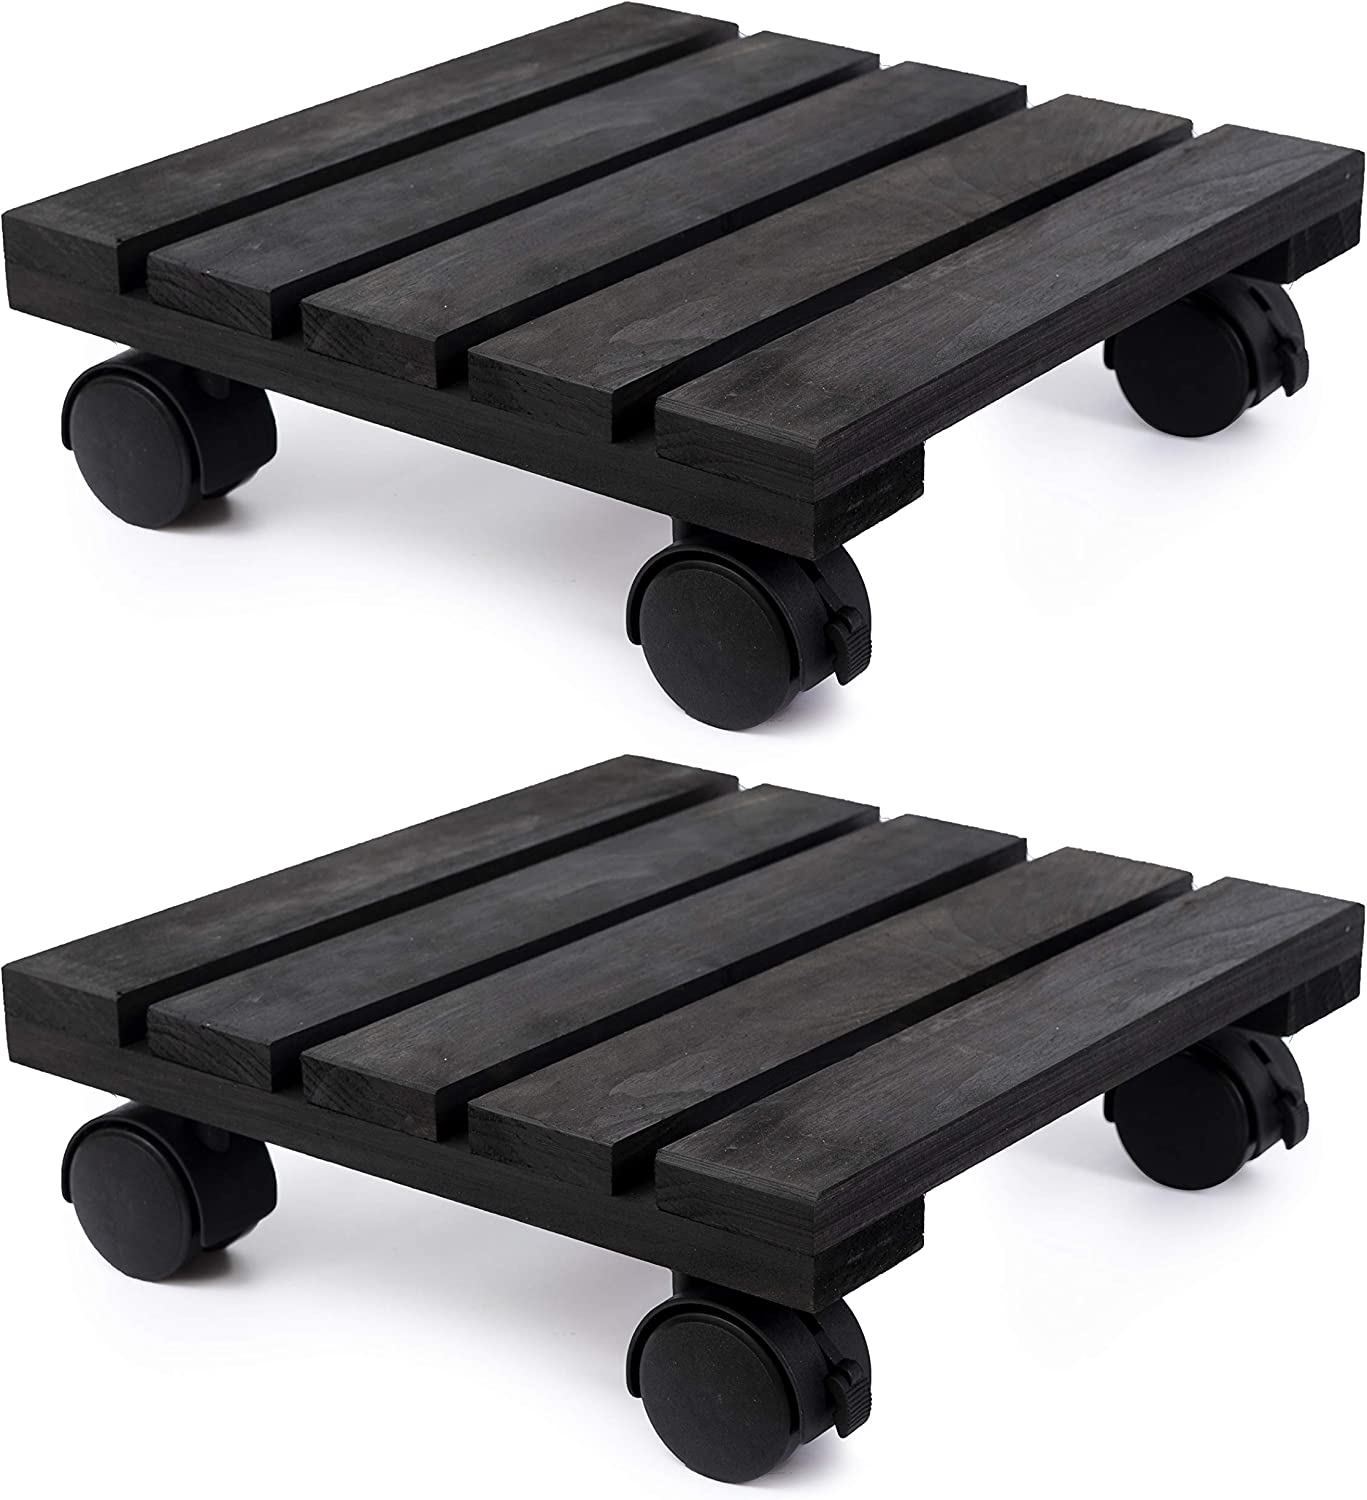 DECOLUXES Lockable Patio Outdoor Roller Flower Pot 12 Inch Heavy Duty Square Plant Caddy Wooden Stand Wheels, Torched Wood (Set of 2, Black)